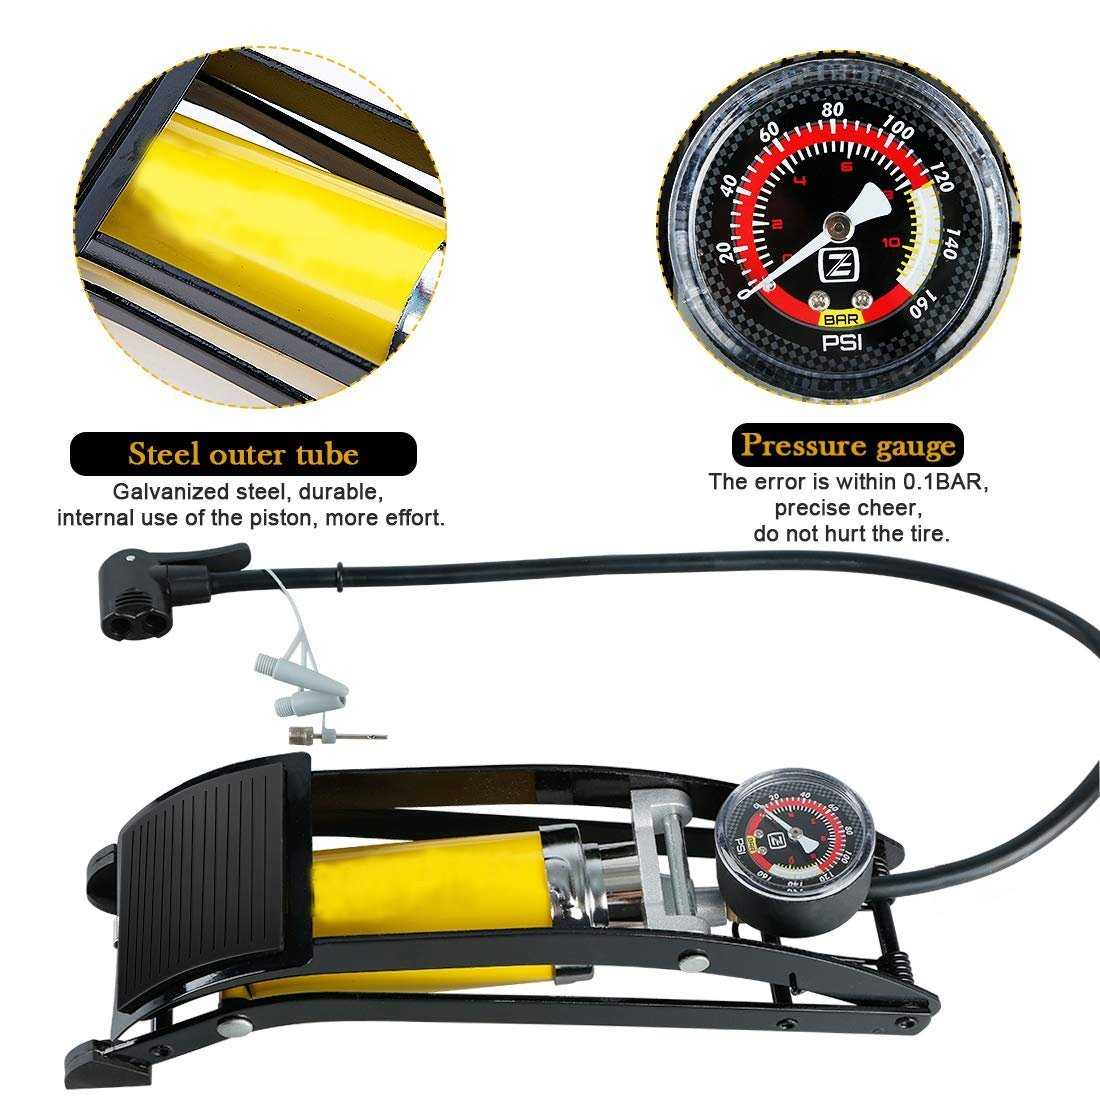 Portable High Pressure Tire 116 psi Air Pump Foot Inflator with Gauge